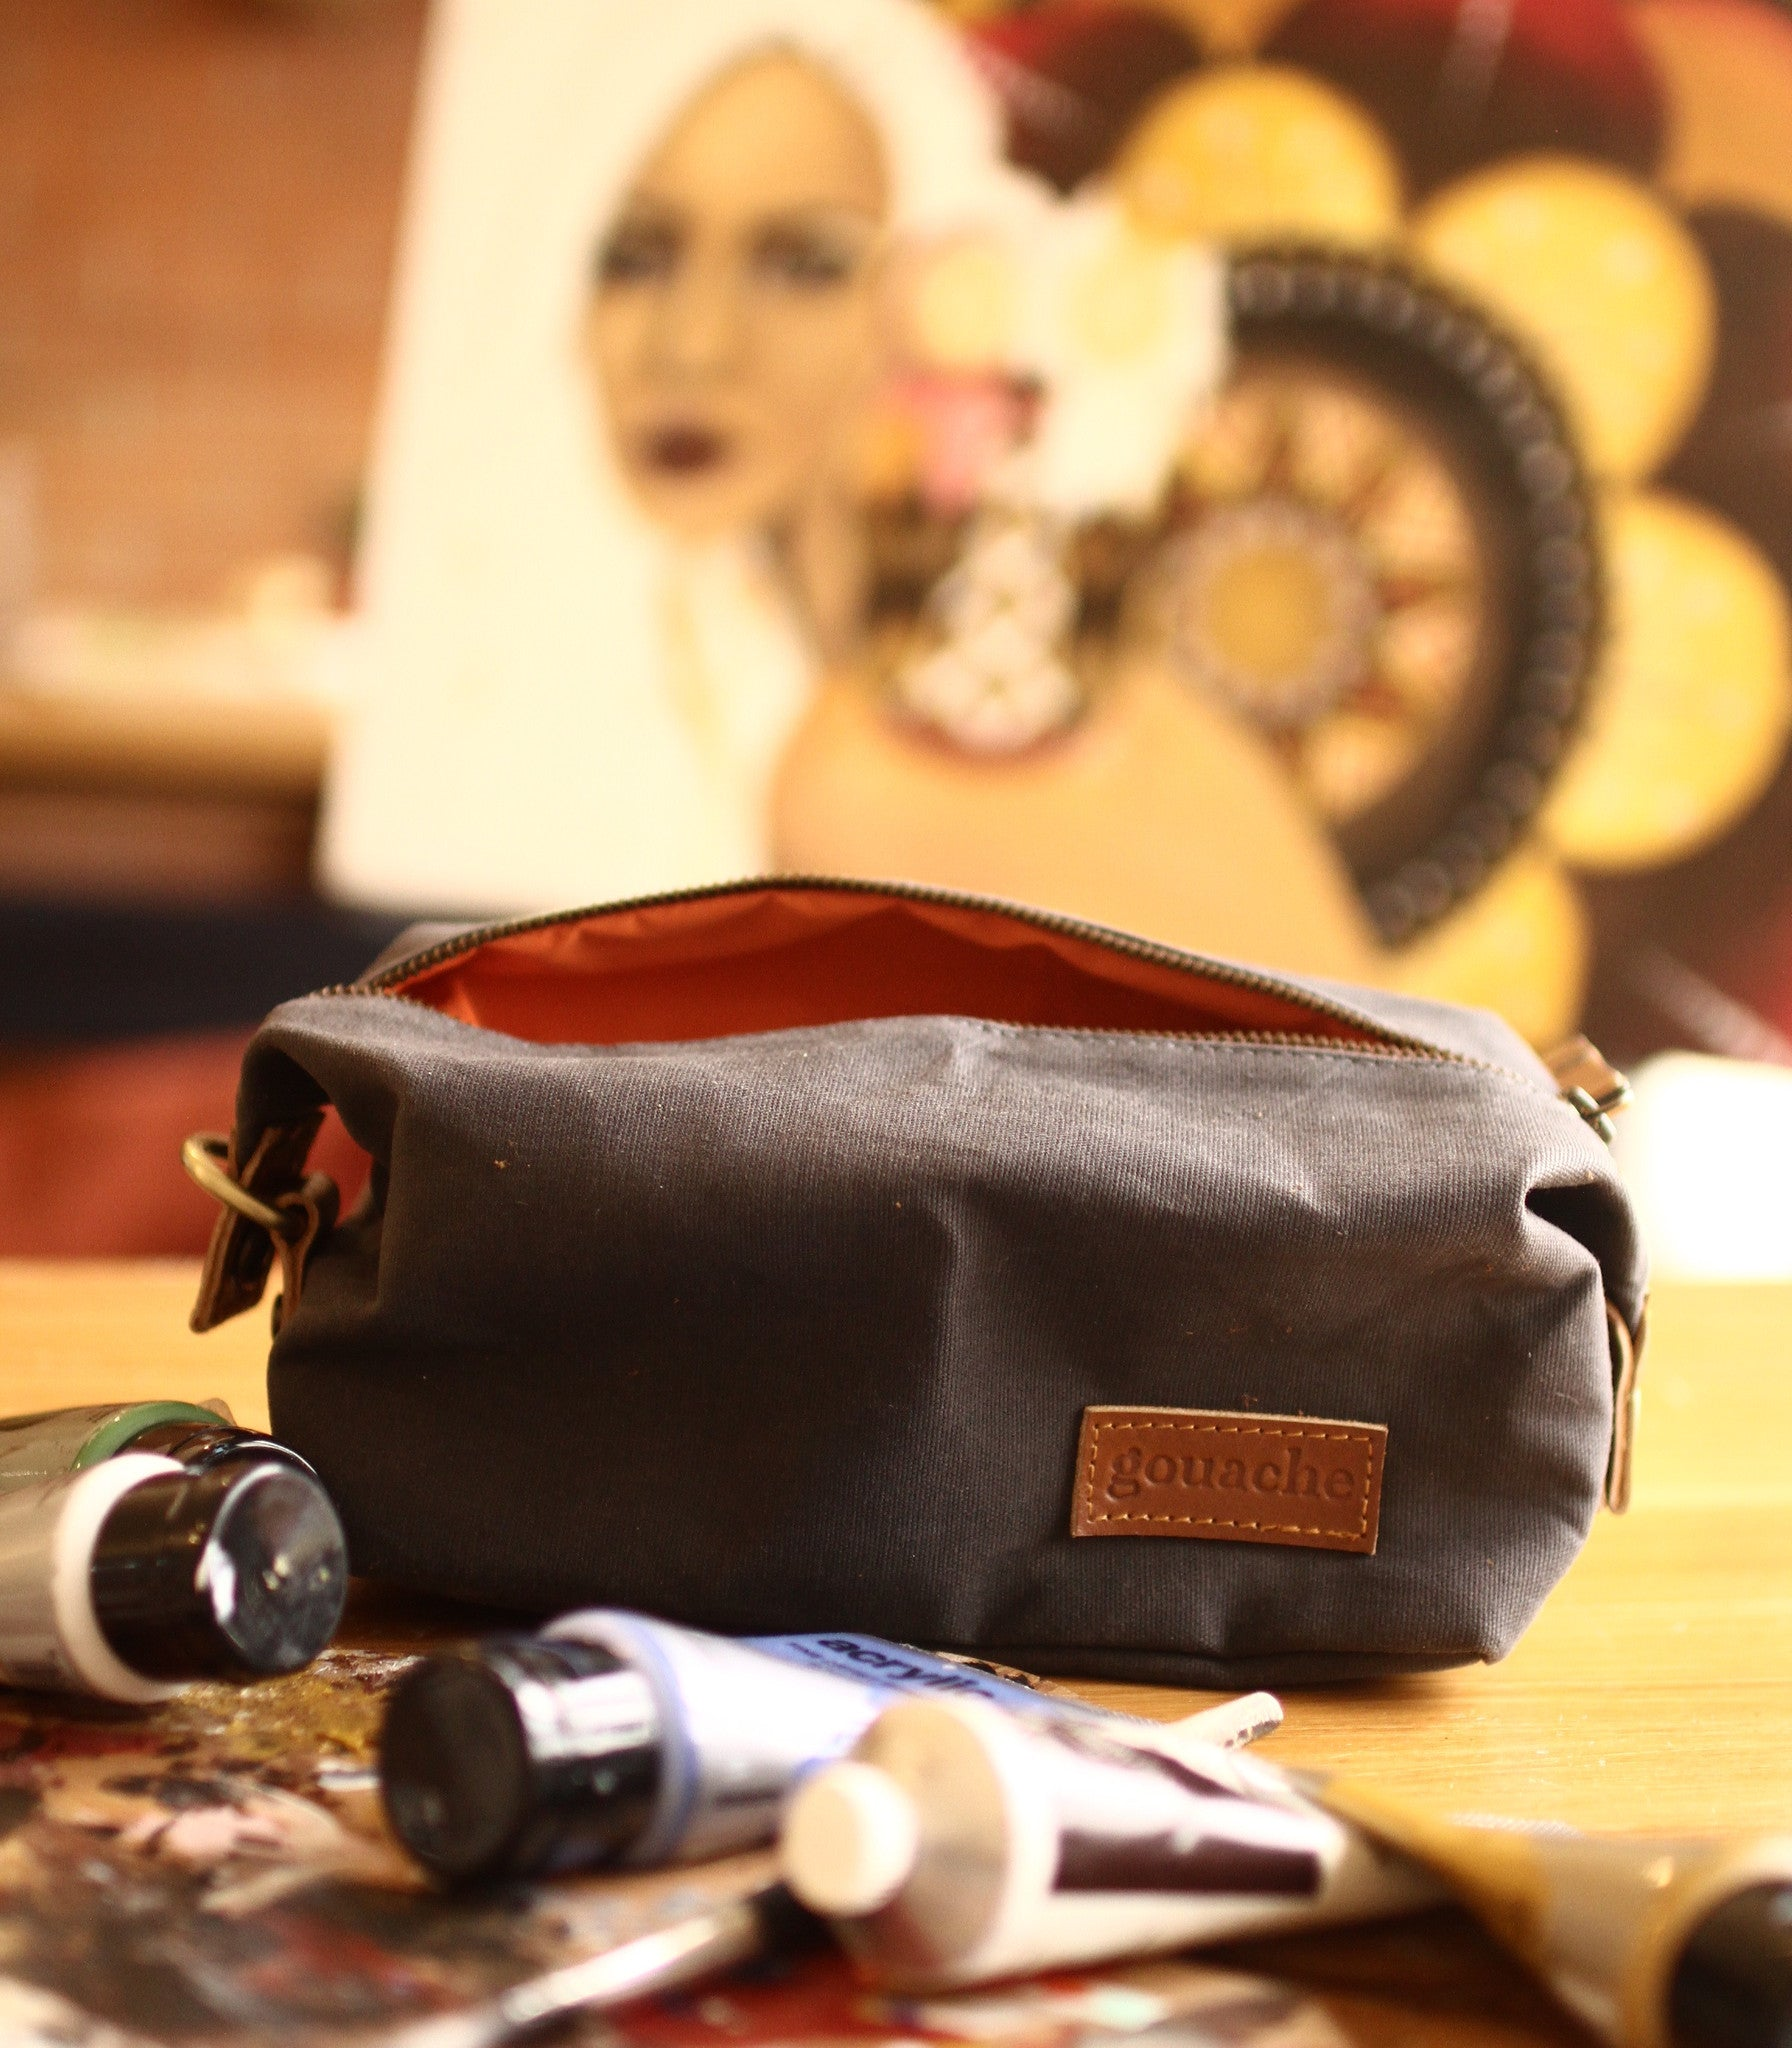 Sweeney Toiletry & Travel Bag